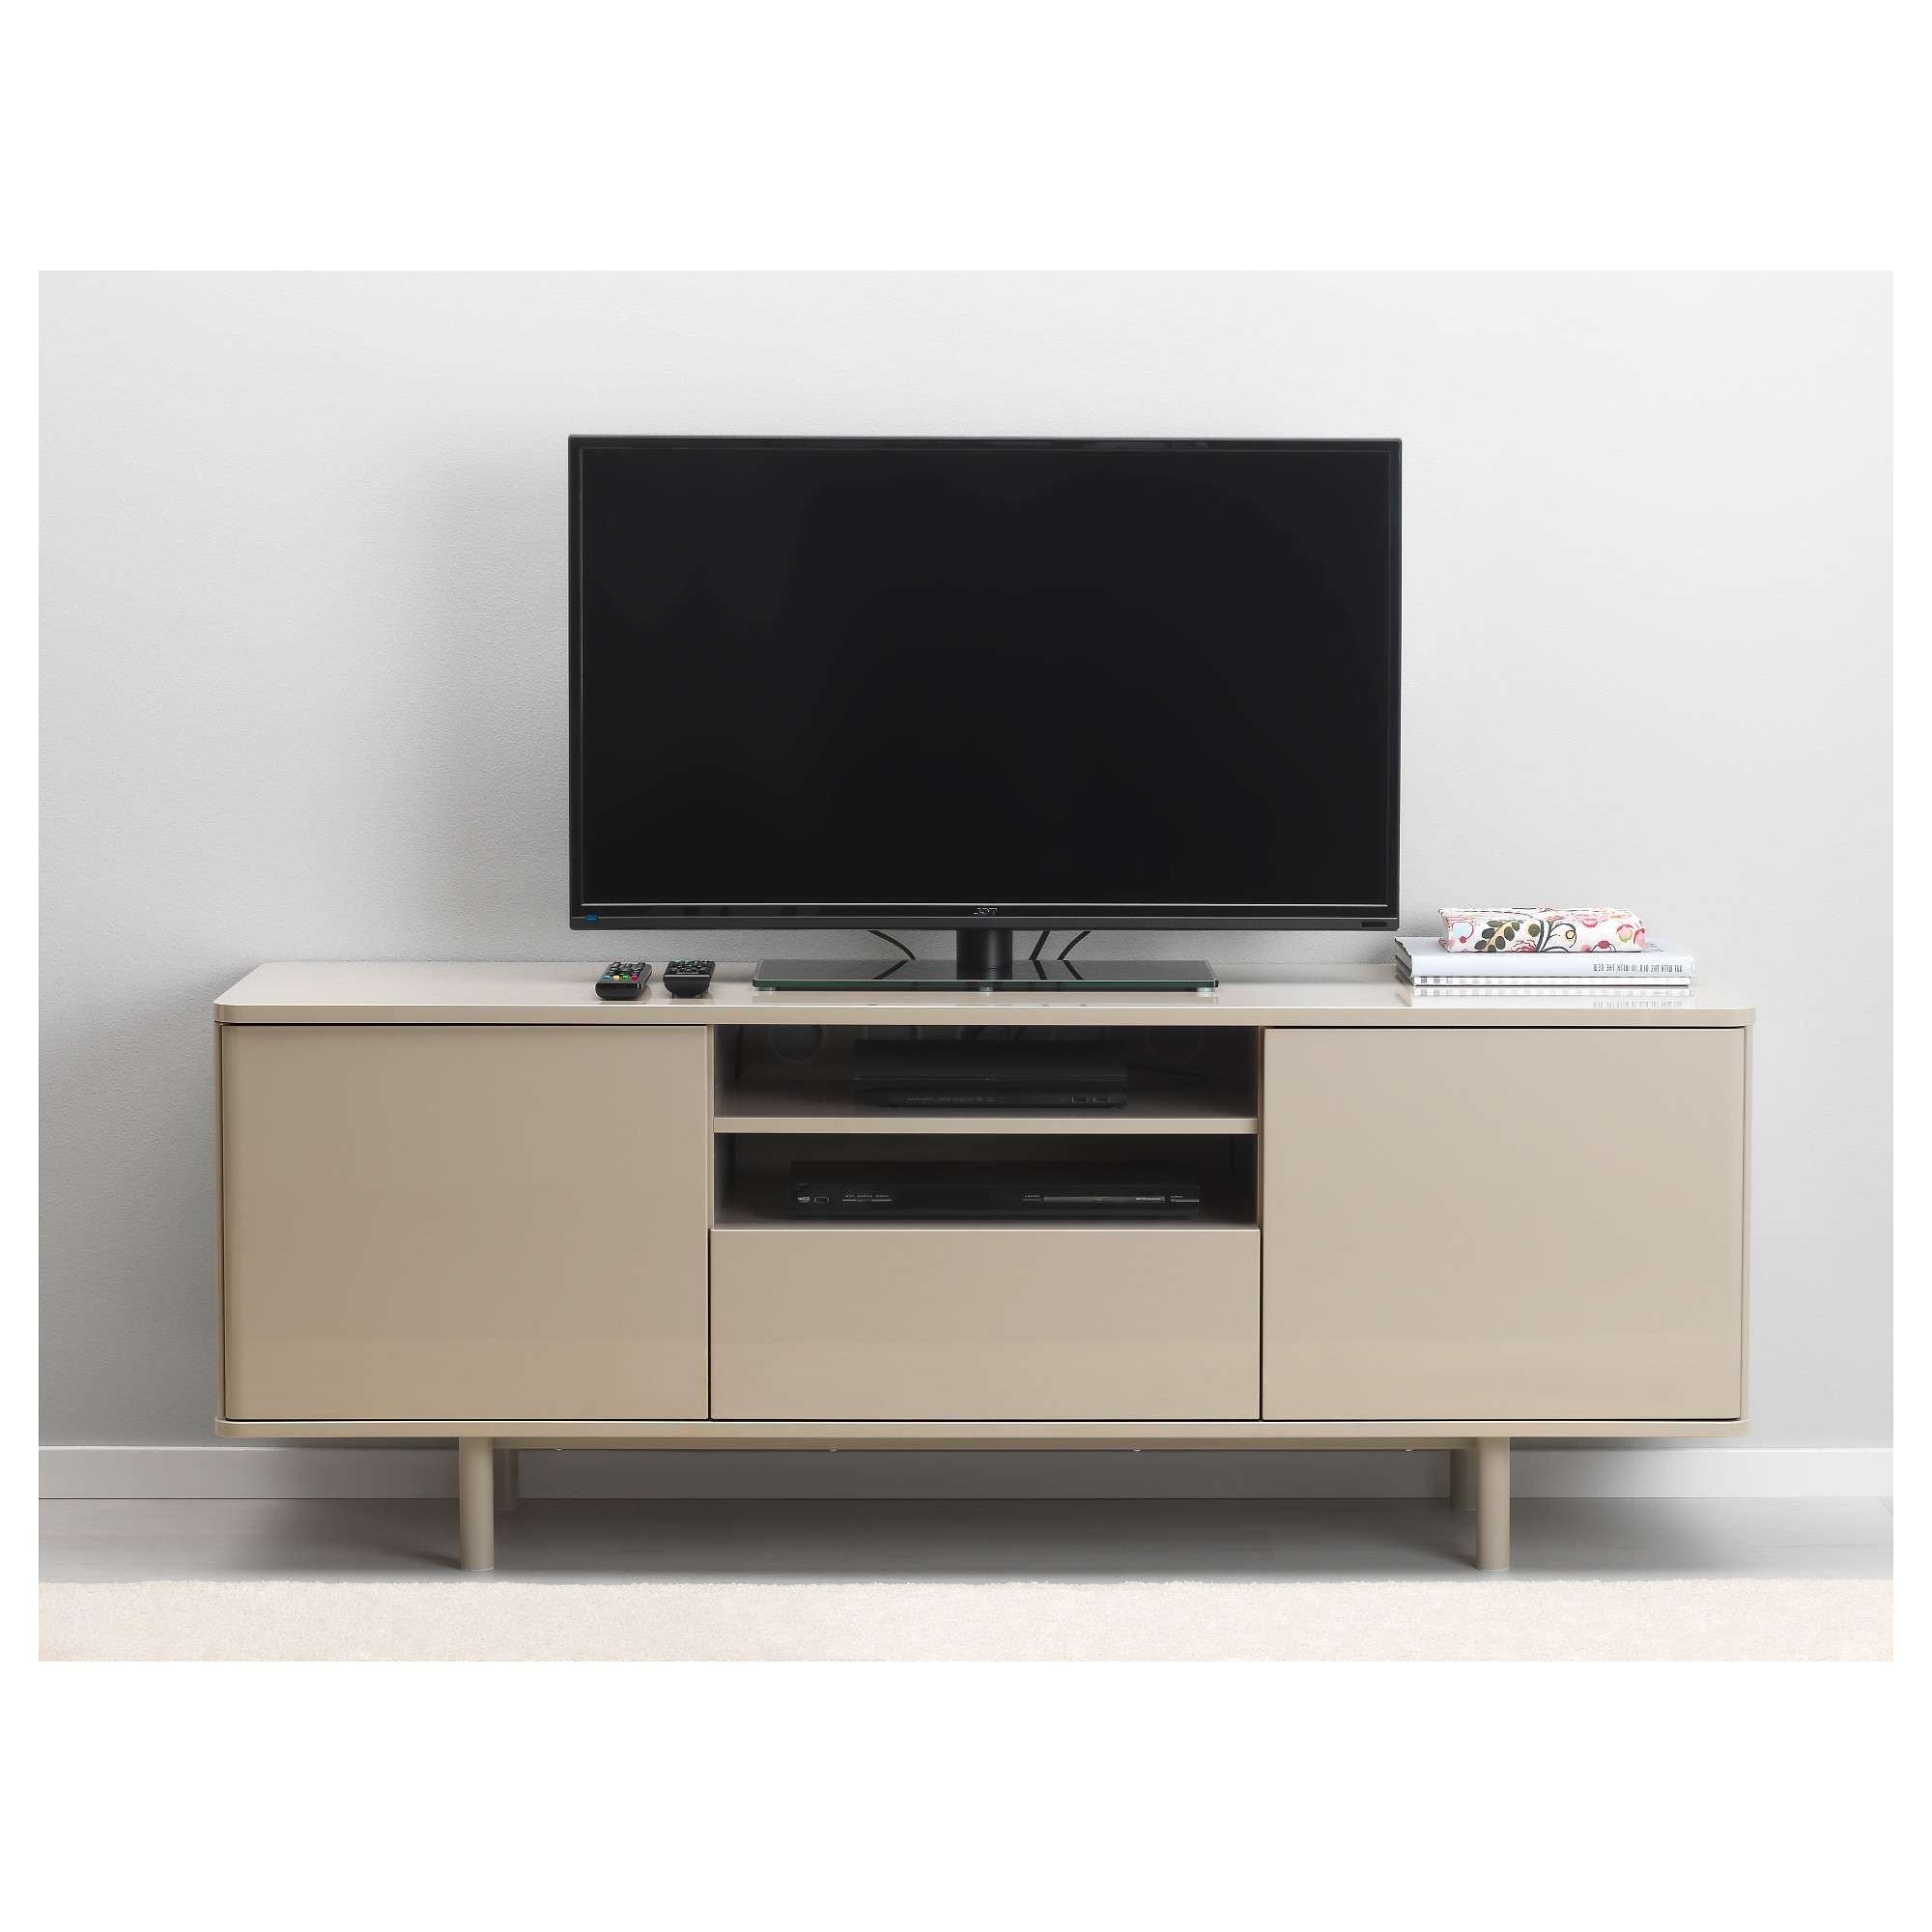 Mostorp Tv Bench Beige 159X46 Cm – Ikea Pertaining To Bench Tv Stands (View 13 of 15)